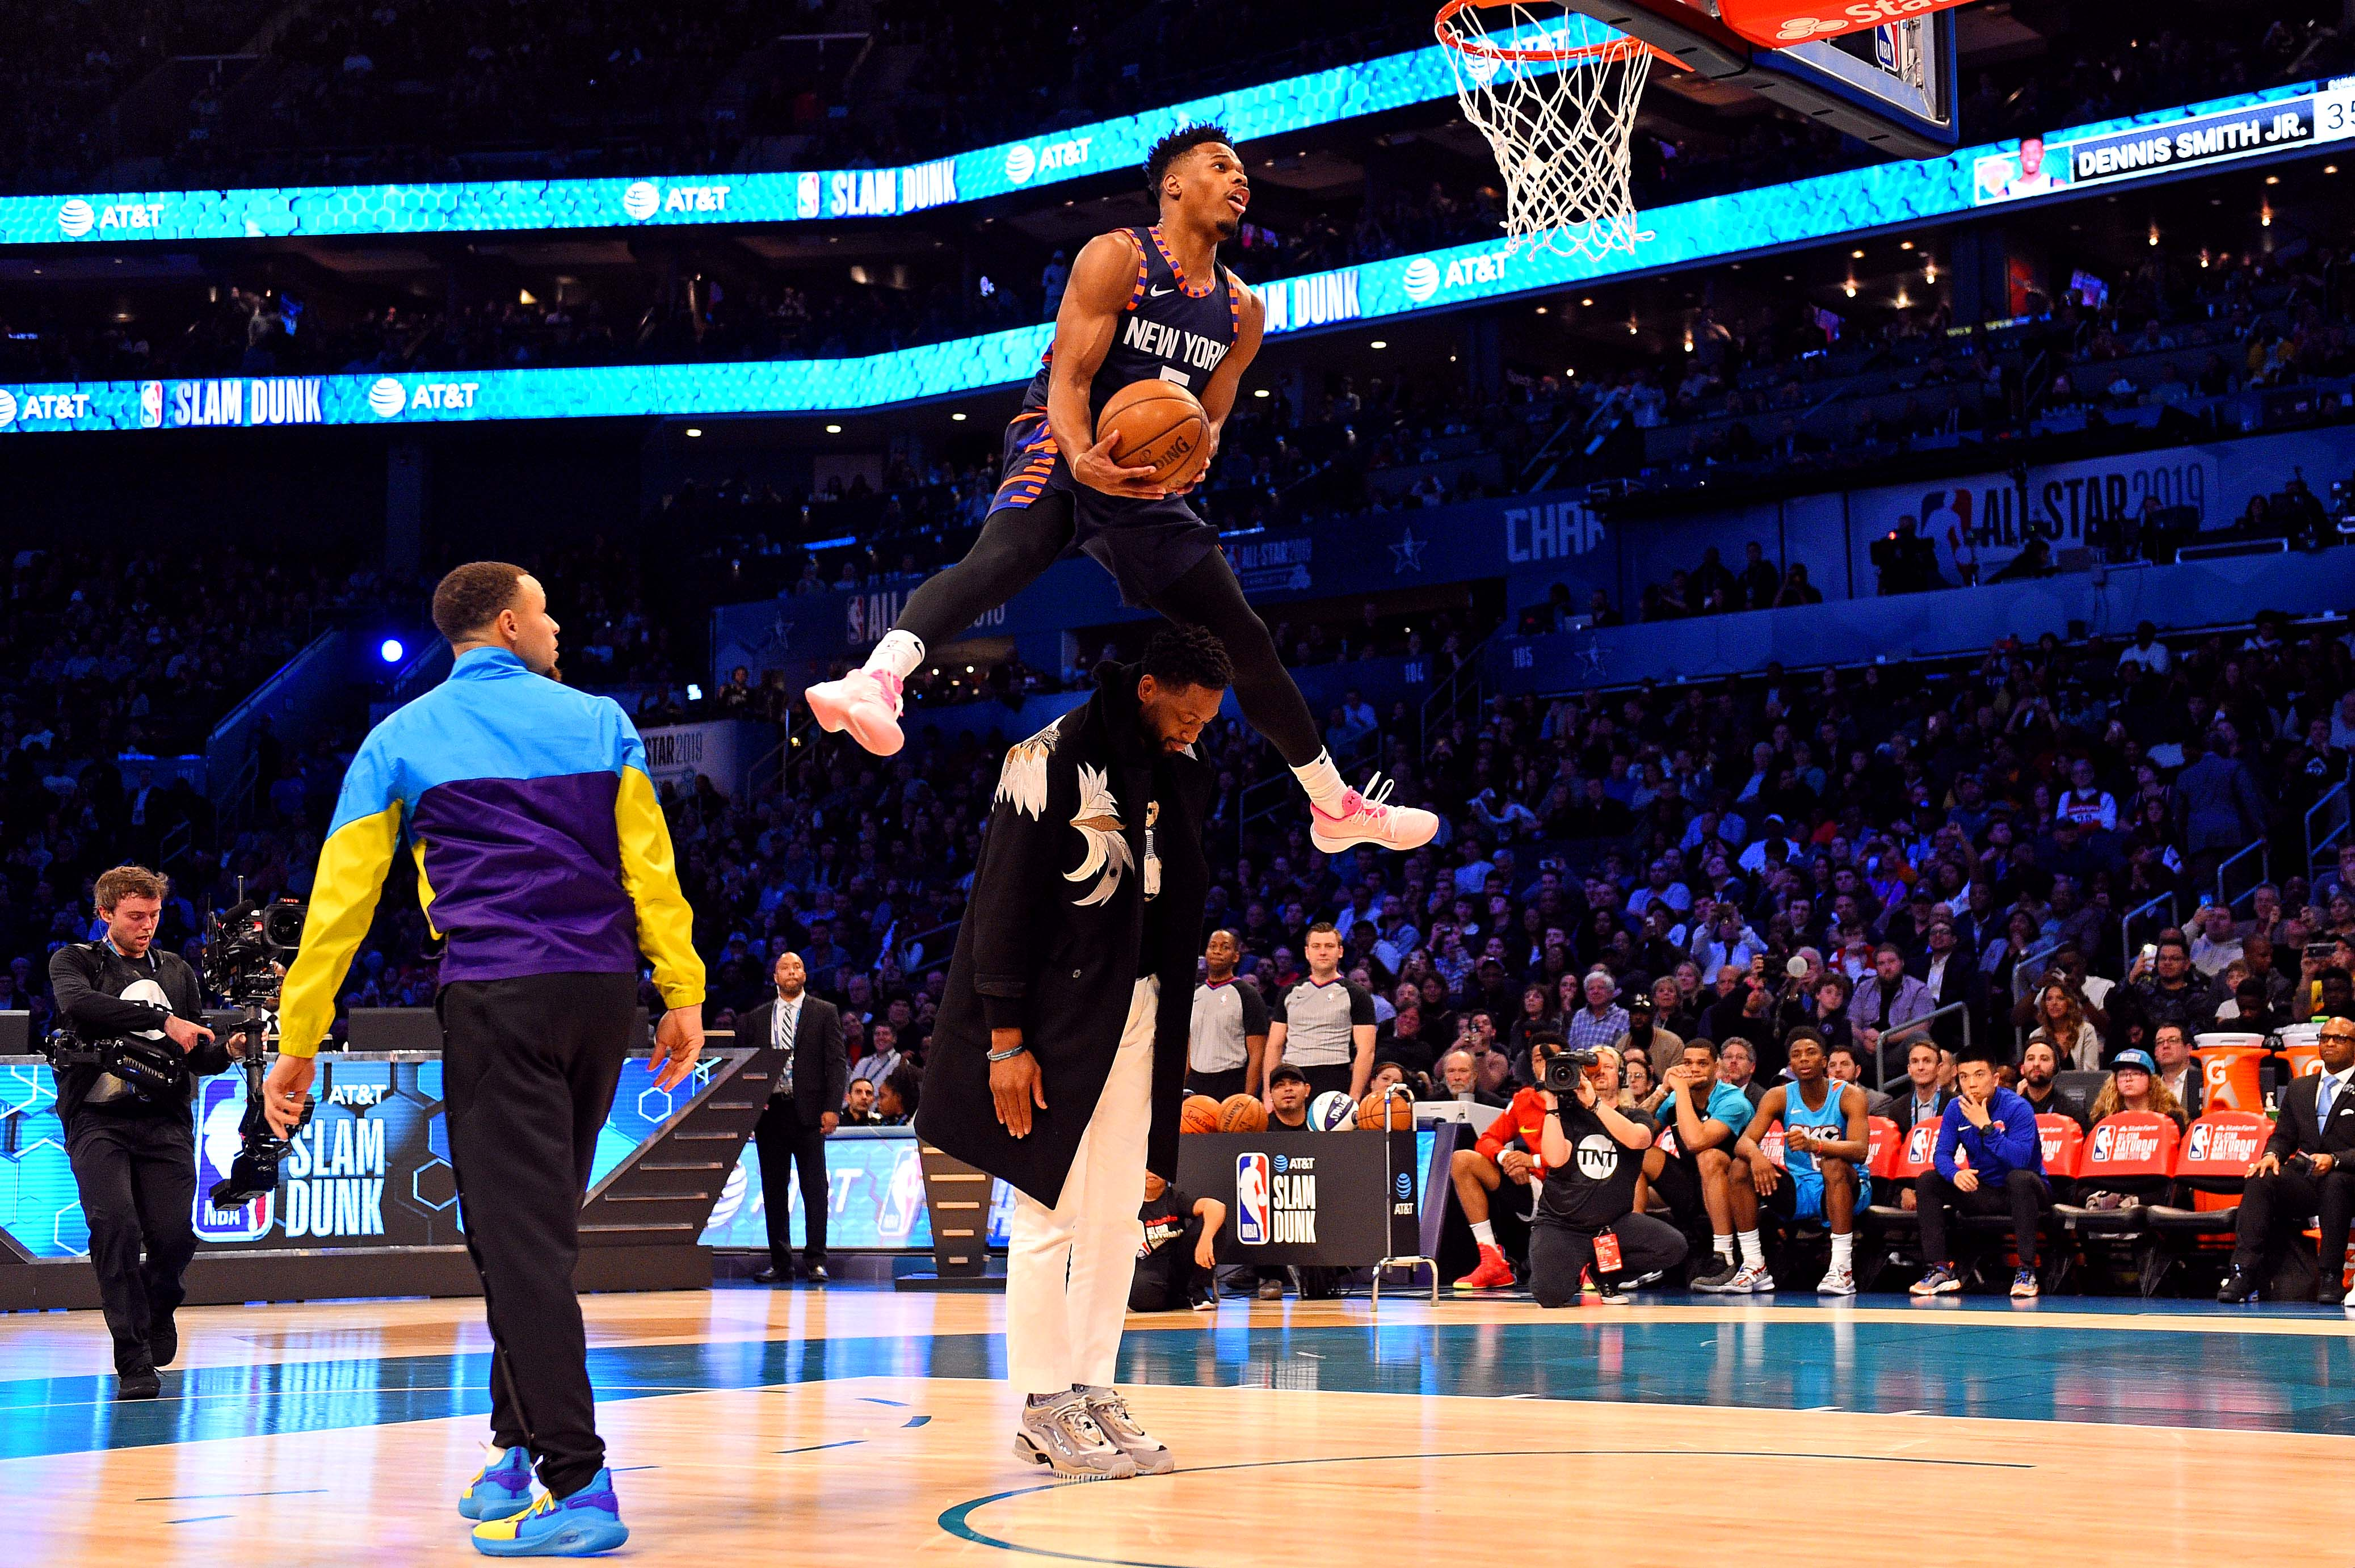 Dennis Smith Jr. leaps over Dwyane Wade, throws down sick slam in Dunk Contest (Video)